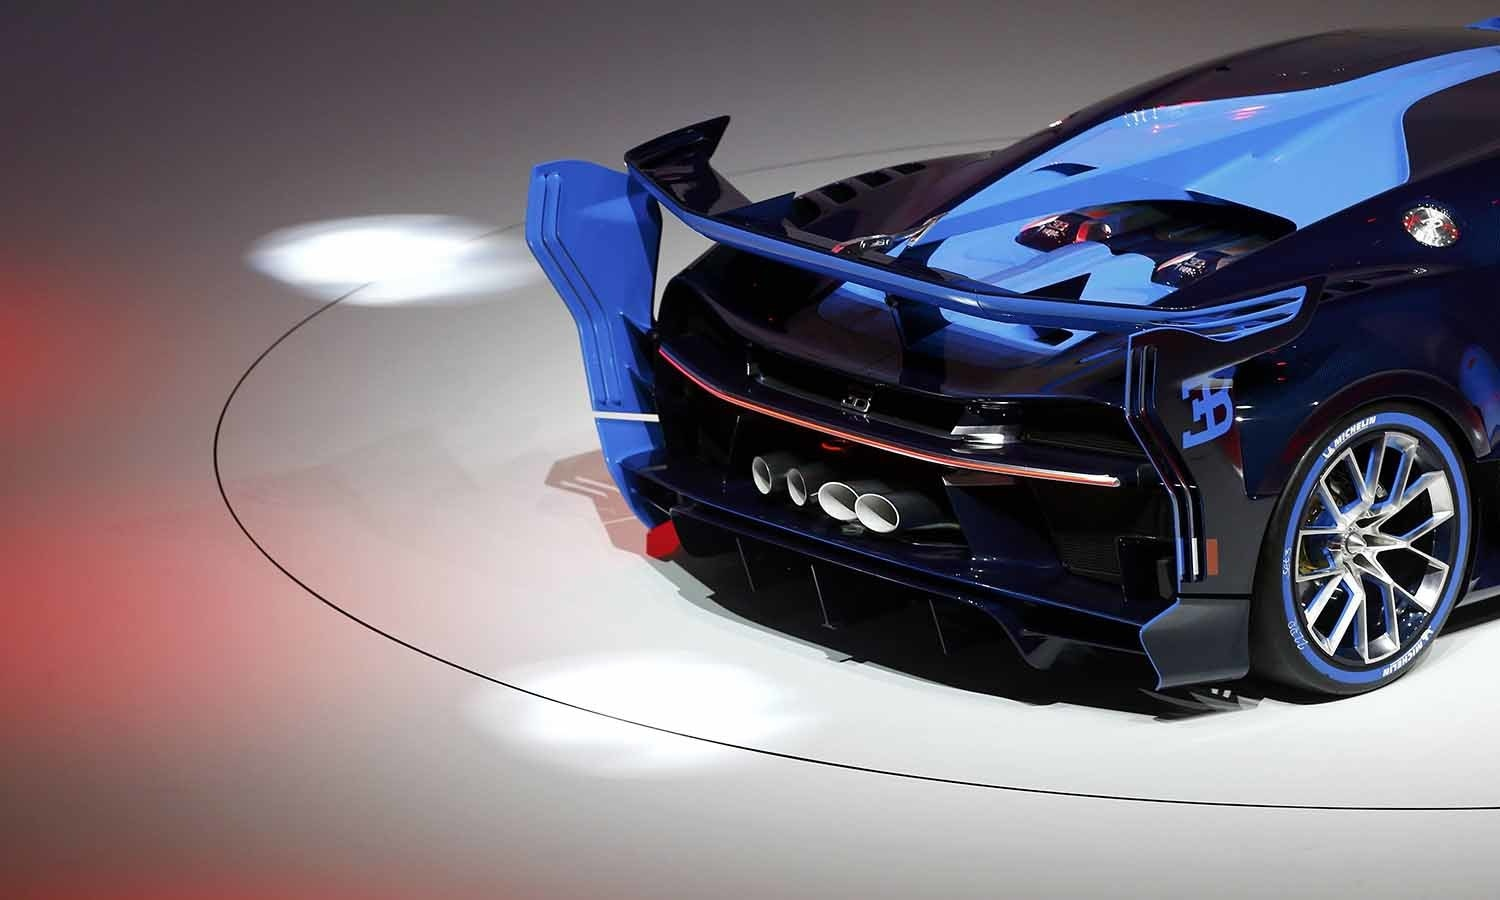 A back view of the Bugatti Vision concept car is presented during the Volkswagen group night. ─ Reuters